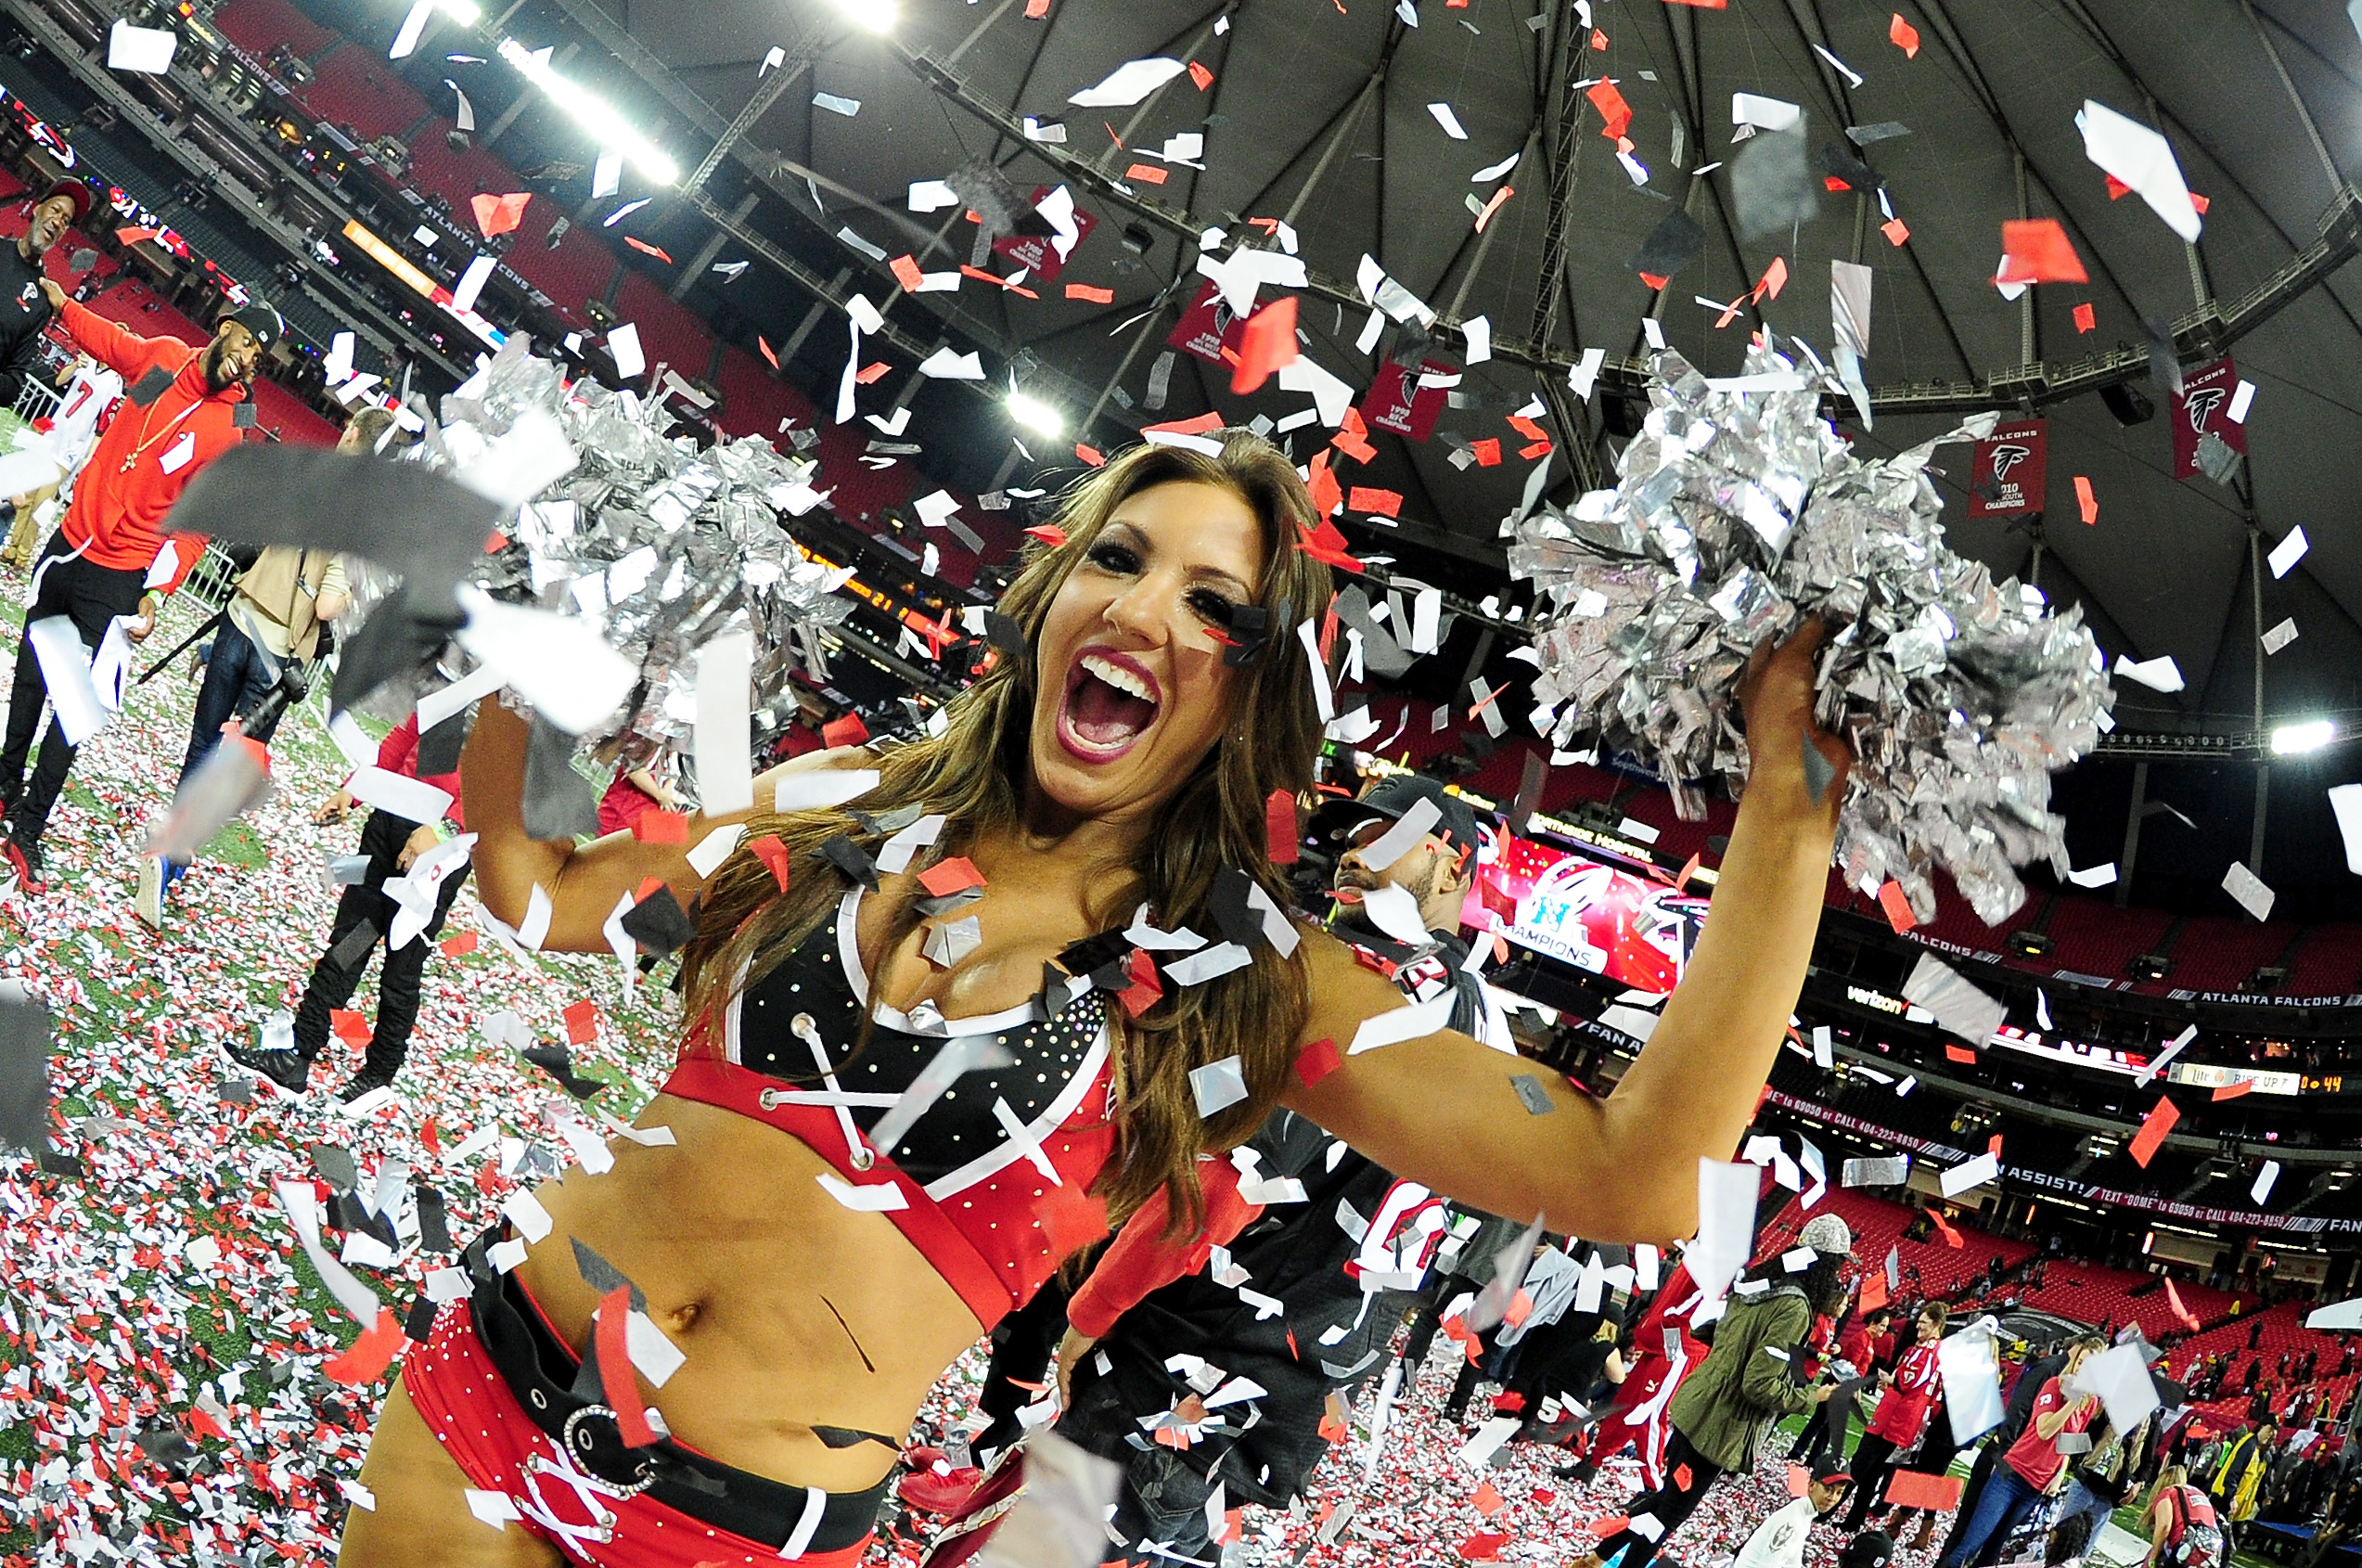 NFC Championship - Green Bay Packers v Atlanta Falcons